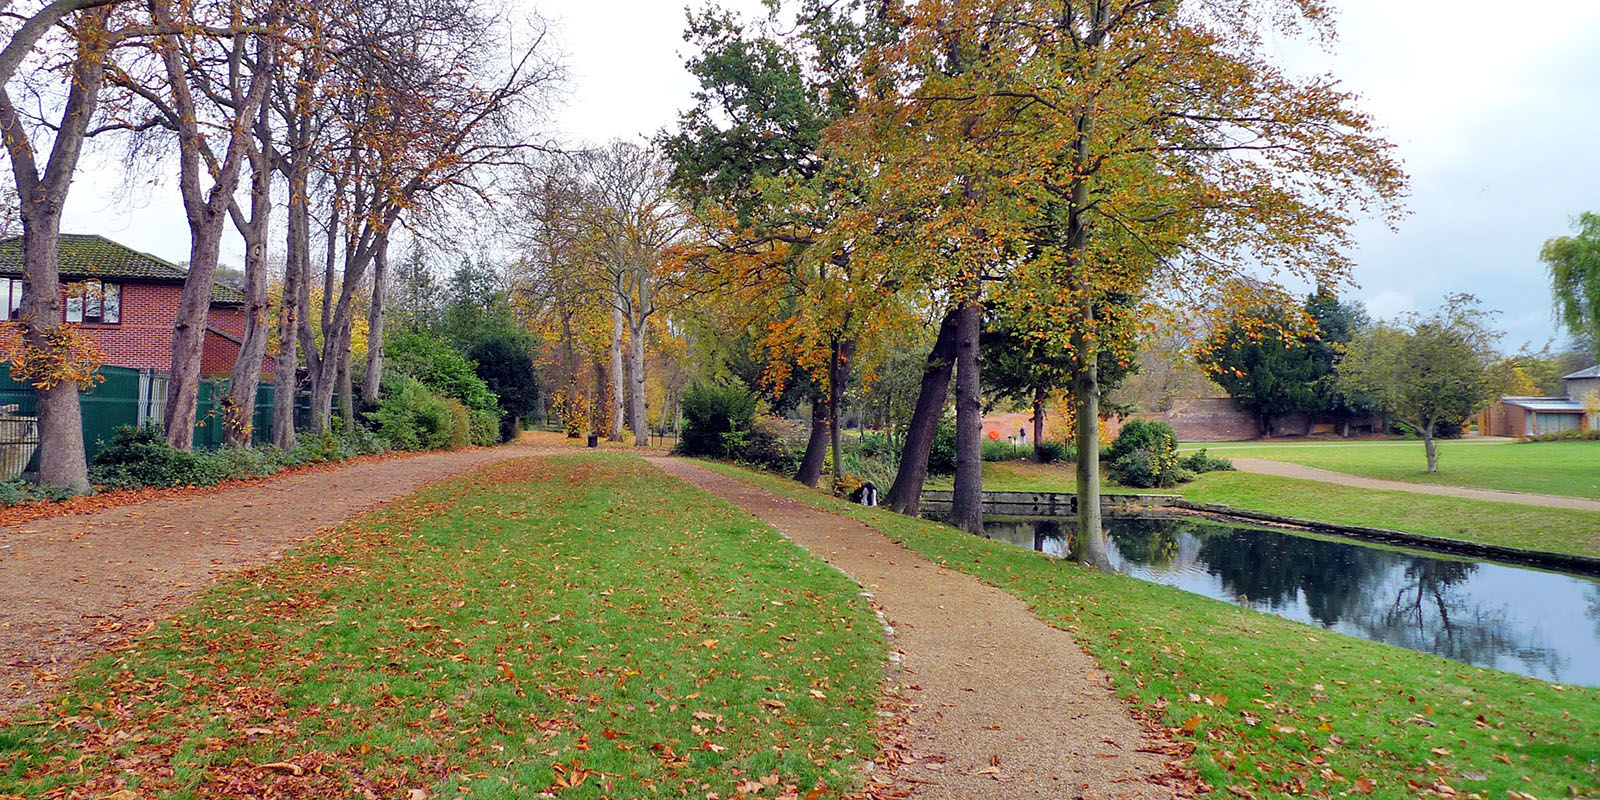 Valentines Park in London Borough of Redbridge.